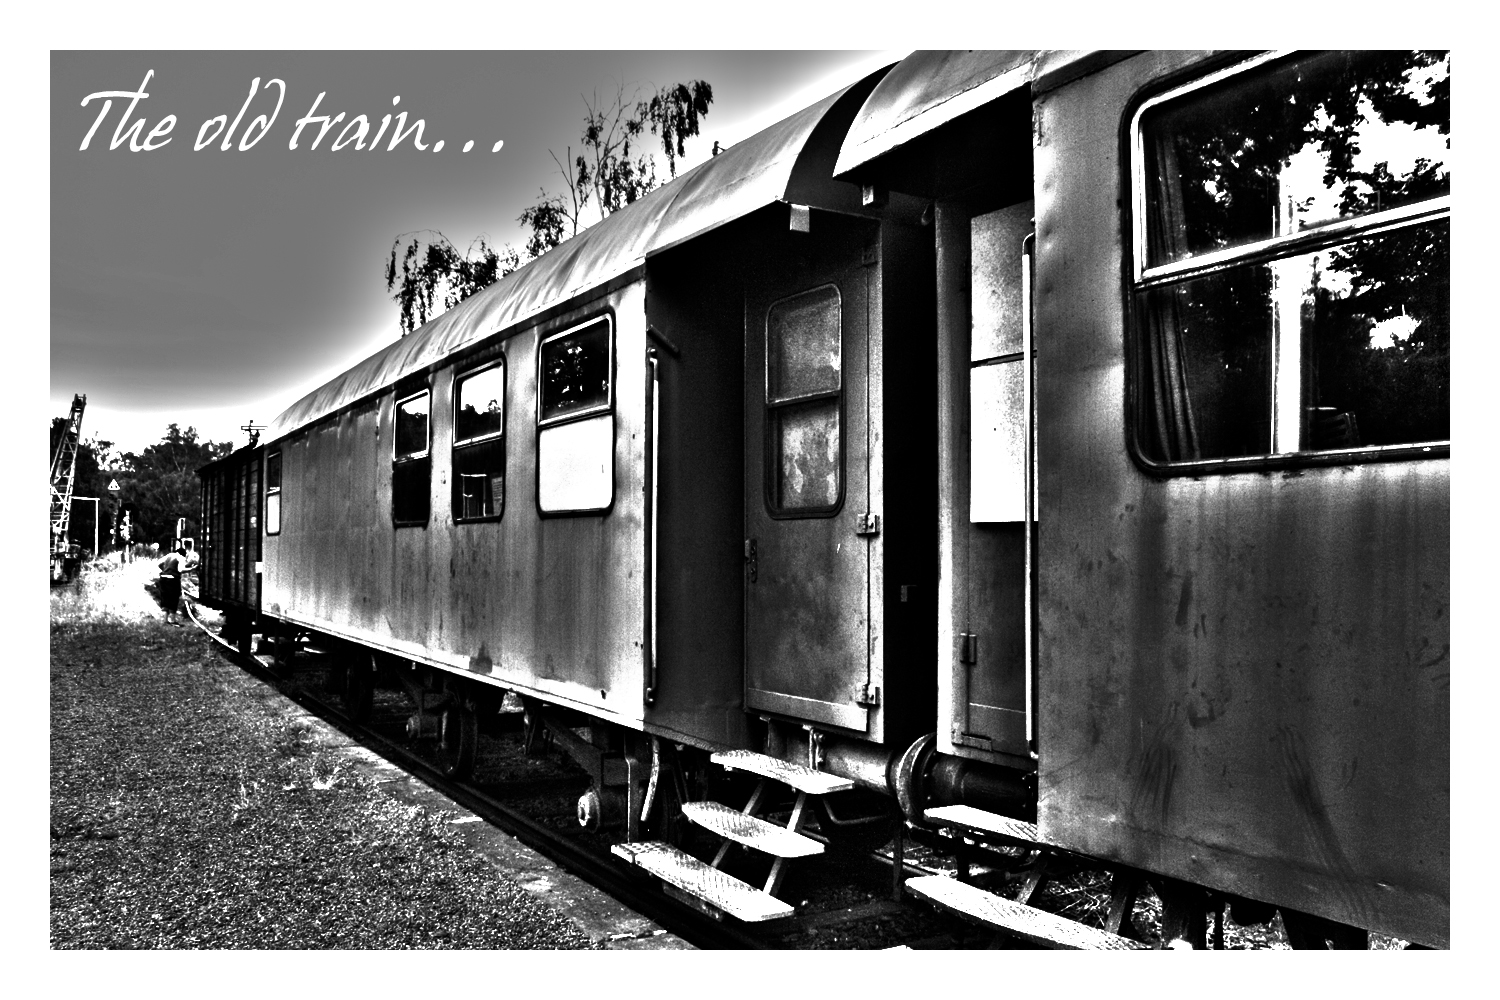 The Old Train...